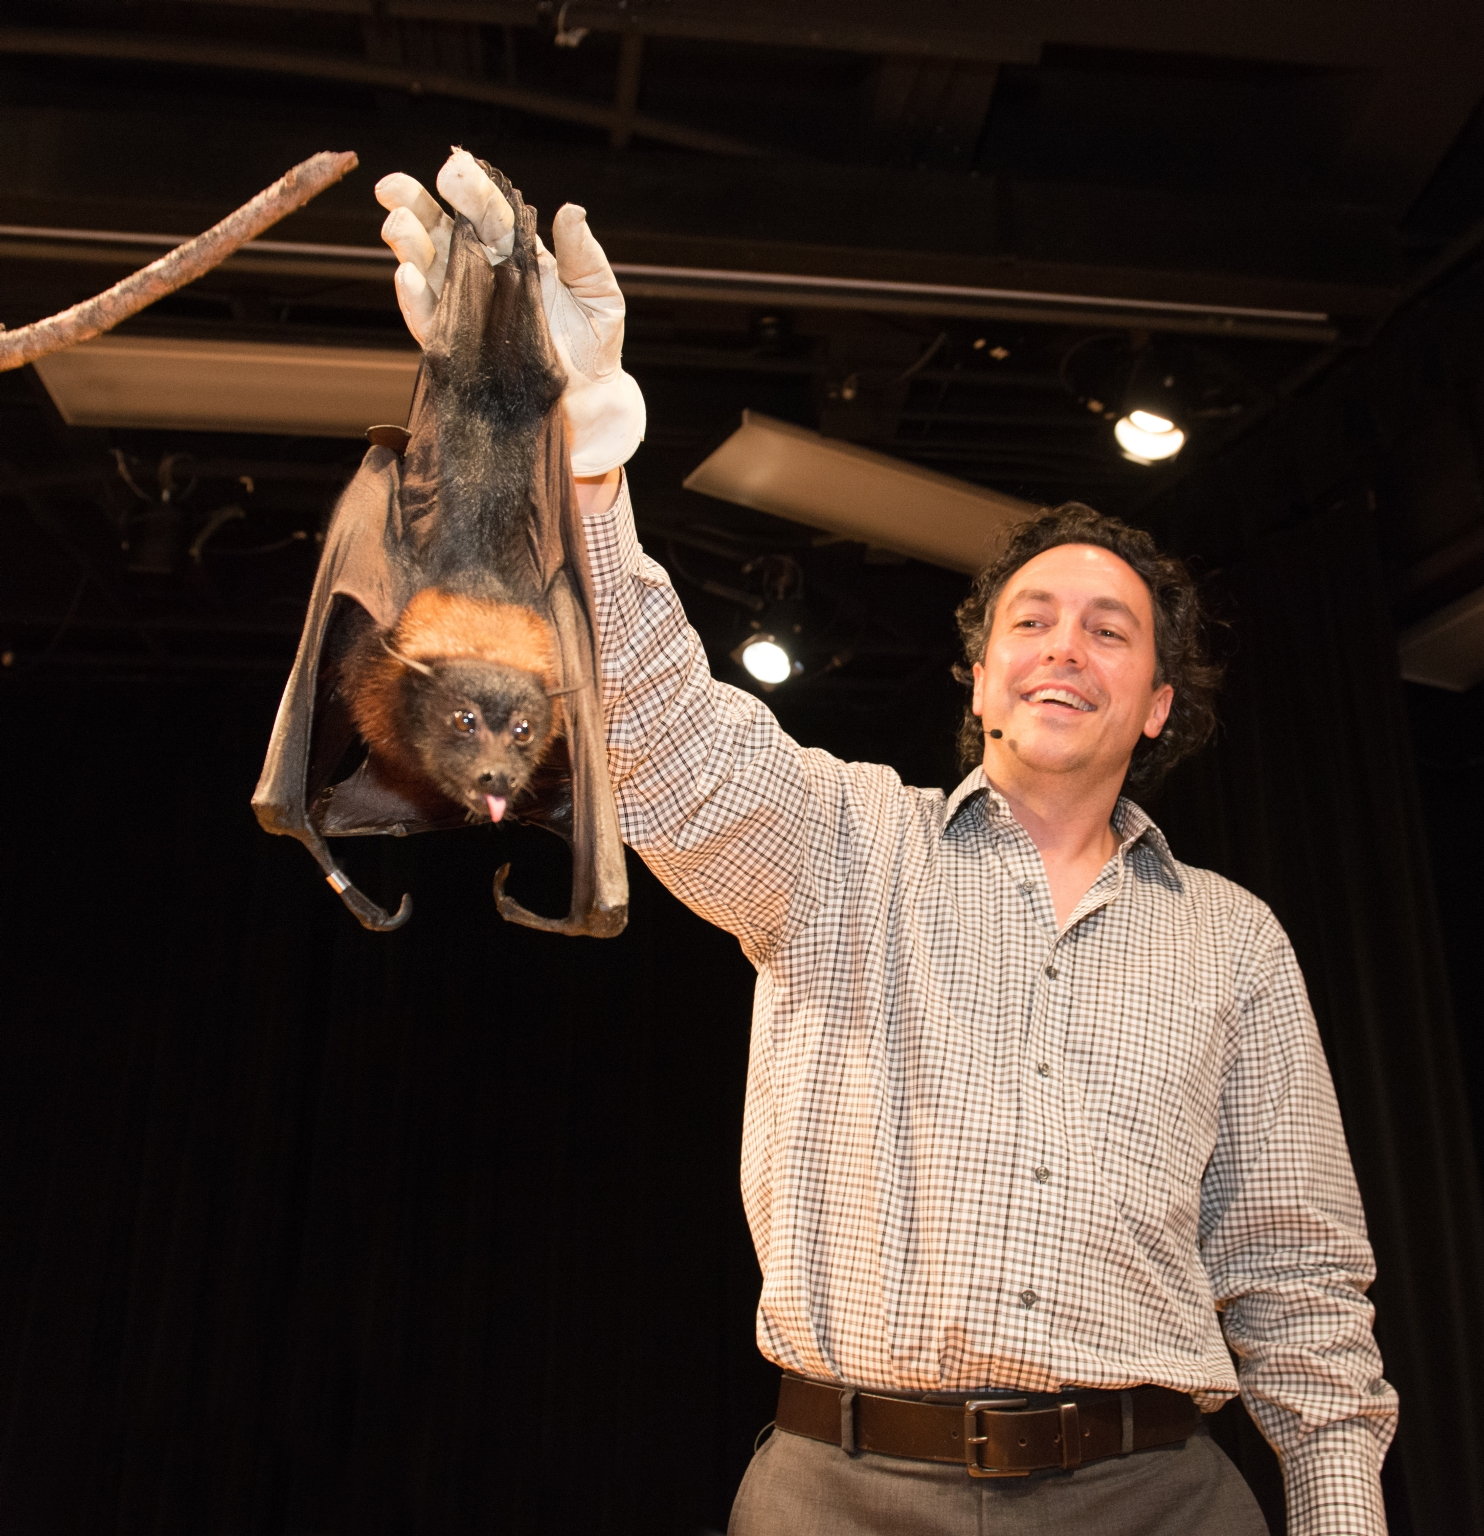 Education Program, Live Bat Demonstration